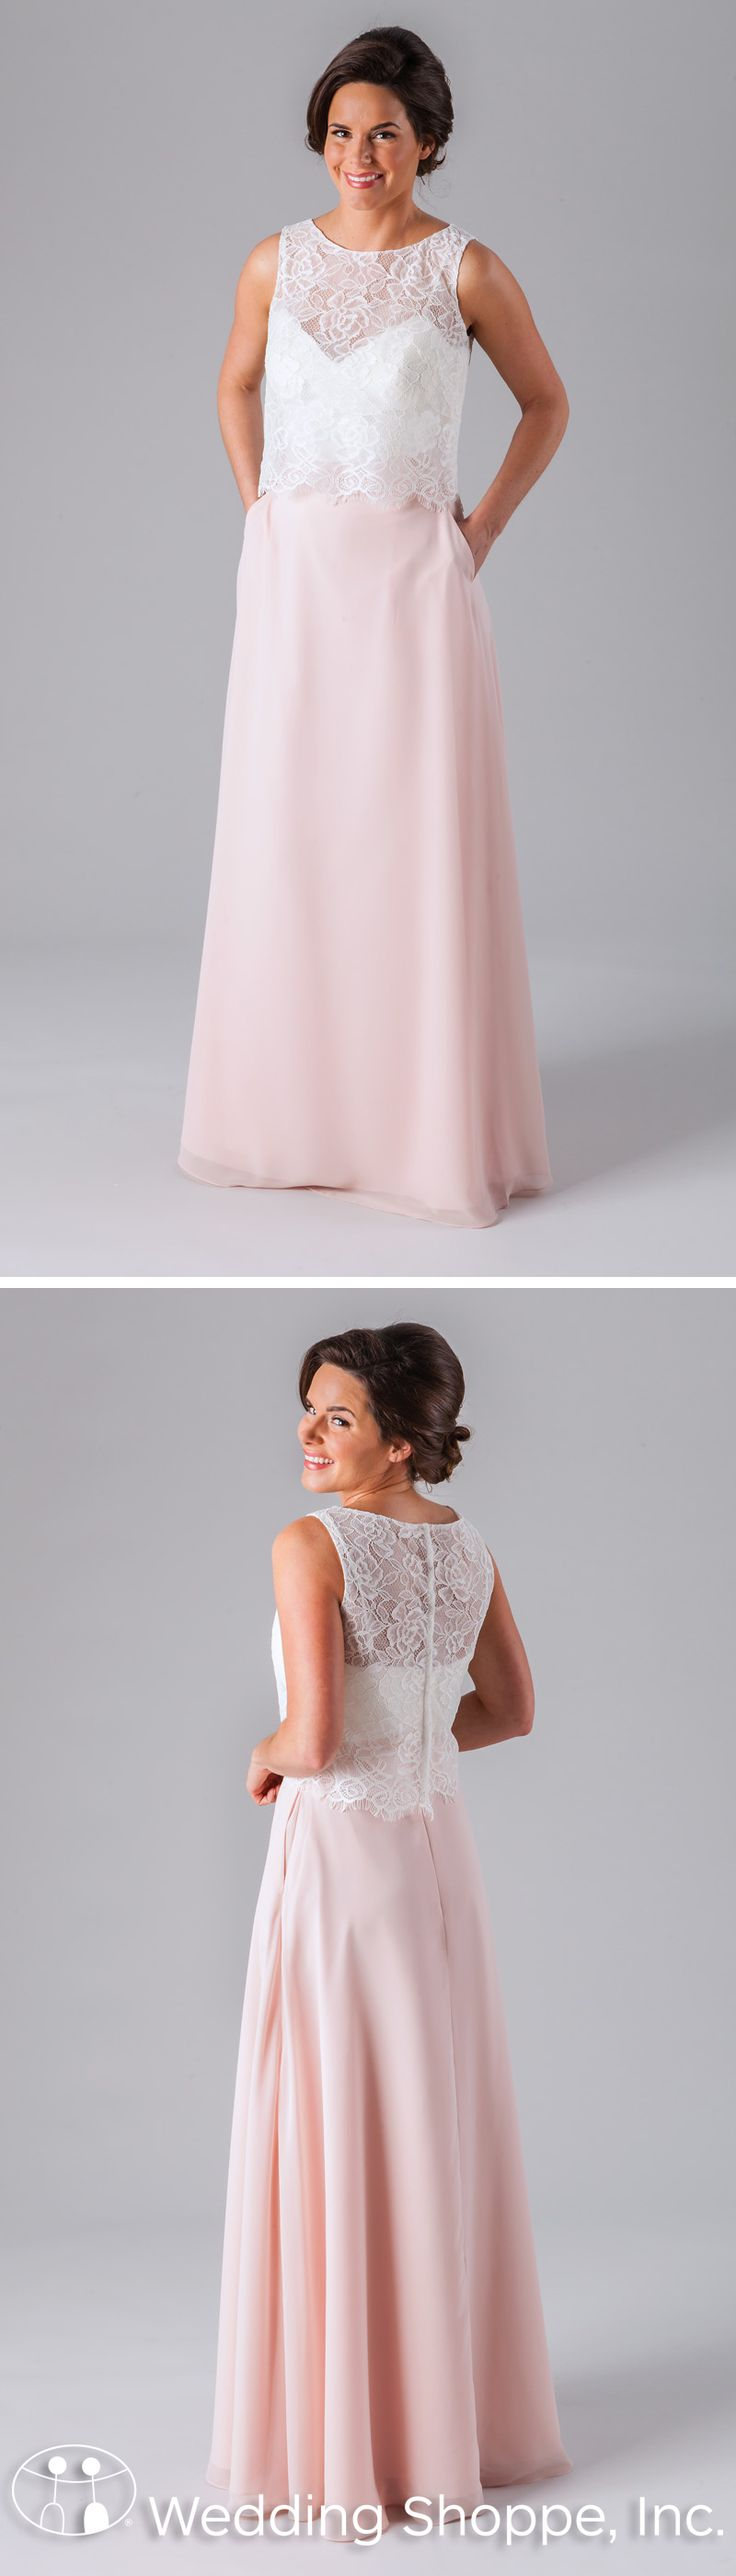 A two-piece bridesmaid dress from Kennedy Blue featuring a lace illusion neckline top and long chiffon skirt.